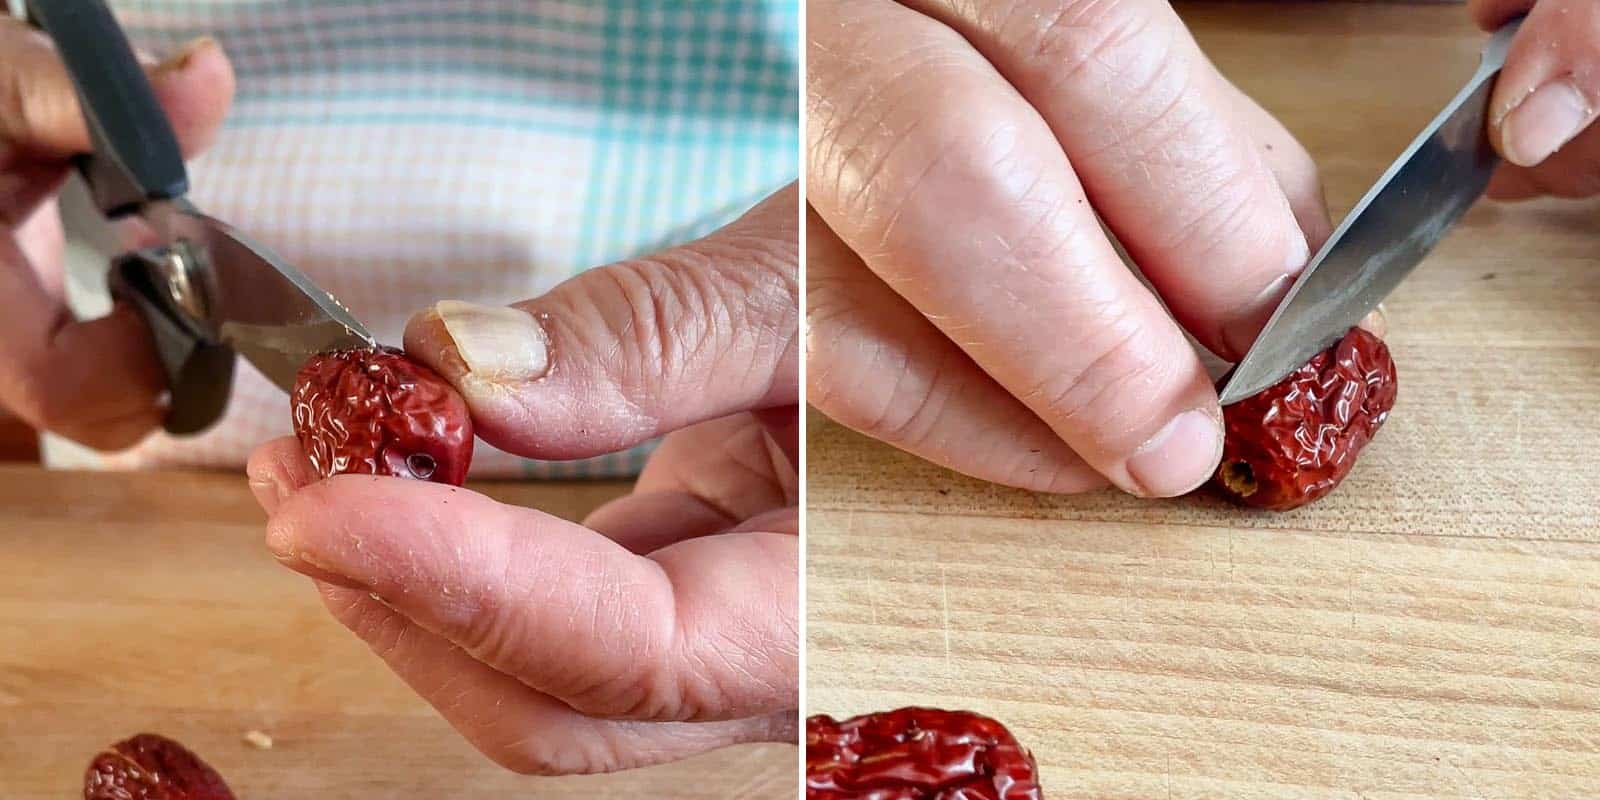 Cutting open red dates with scissors and knife